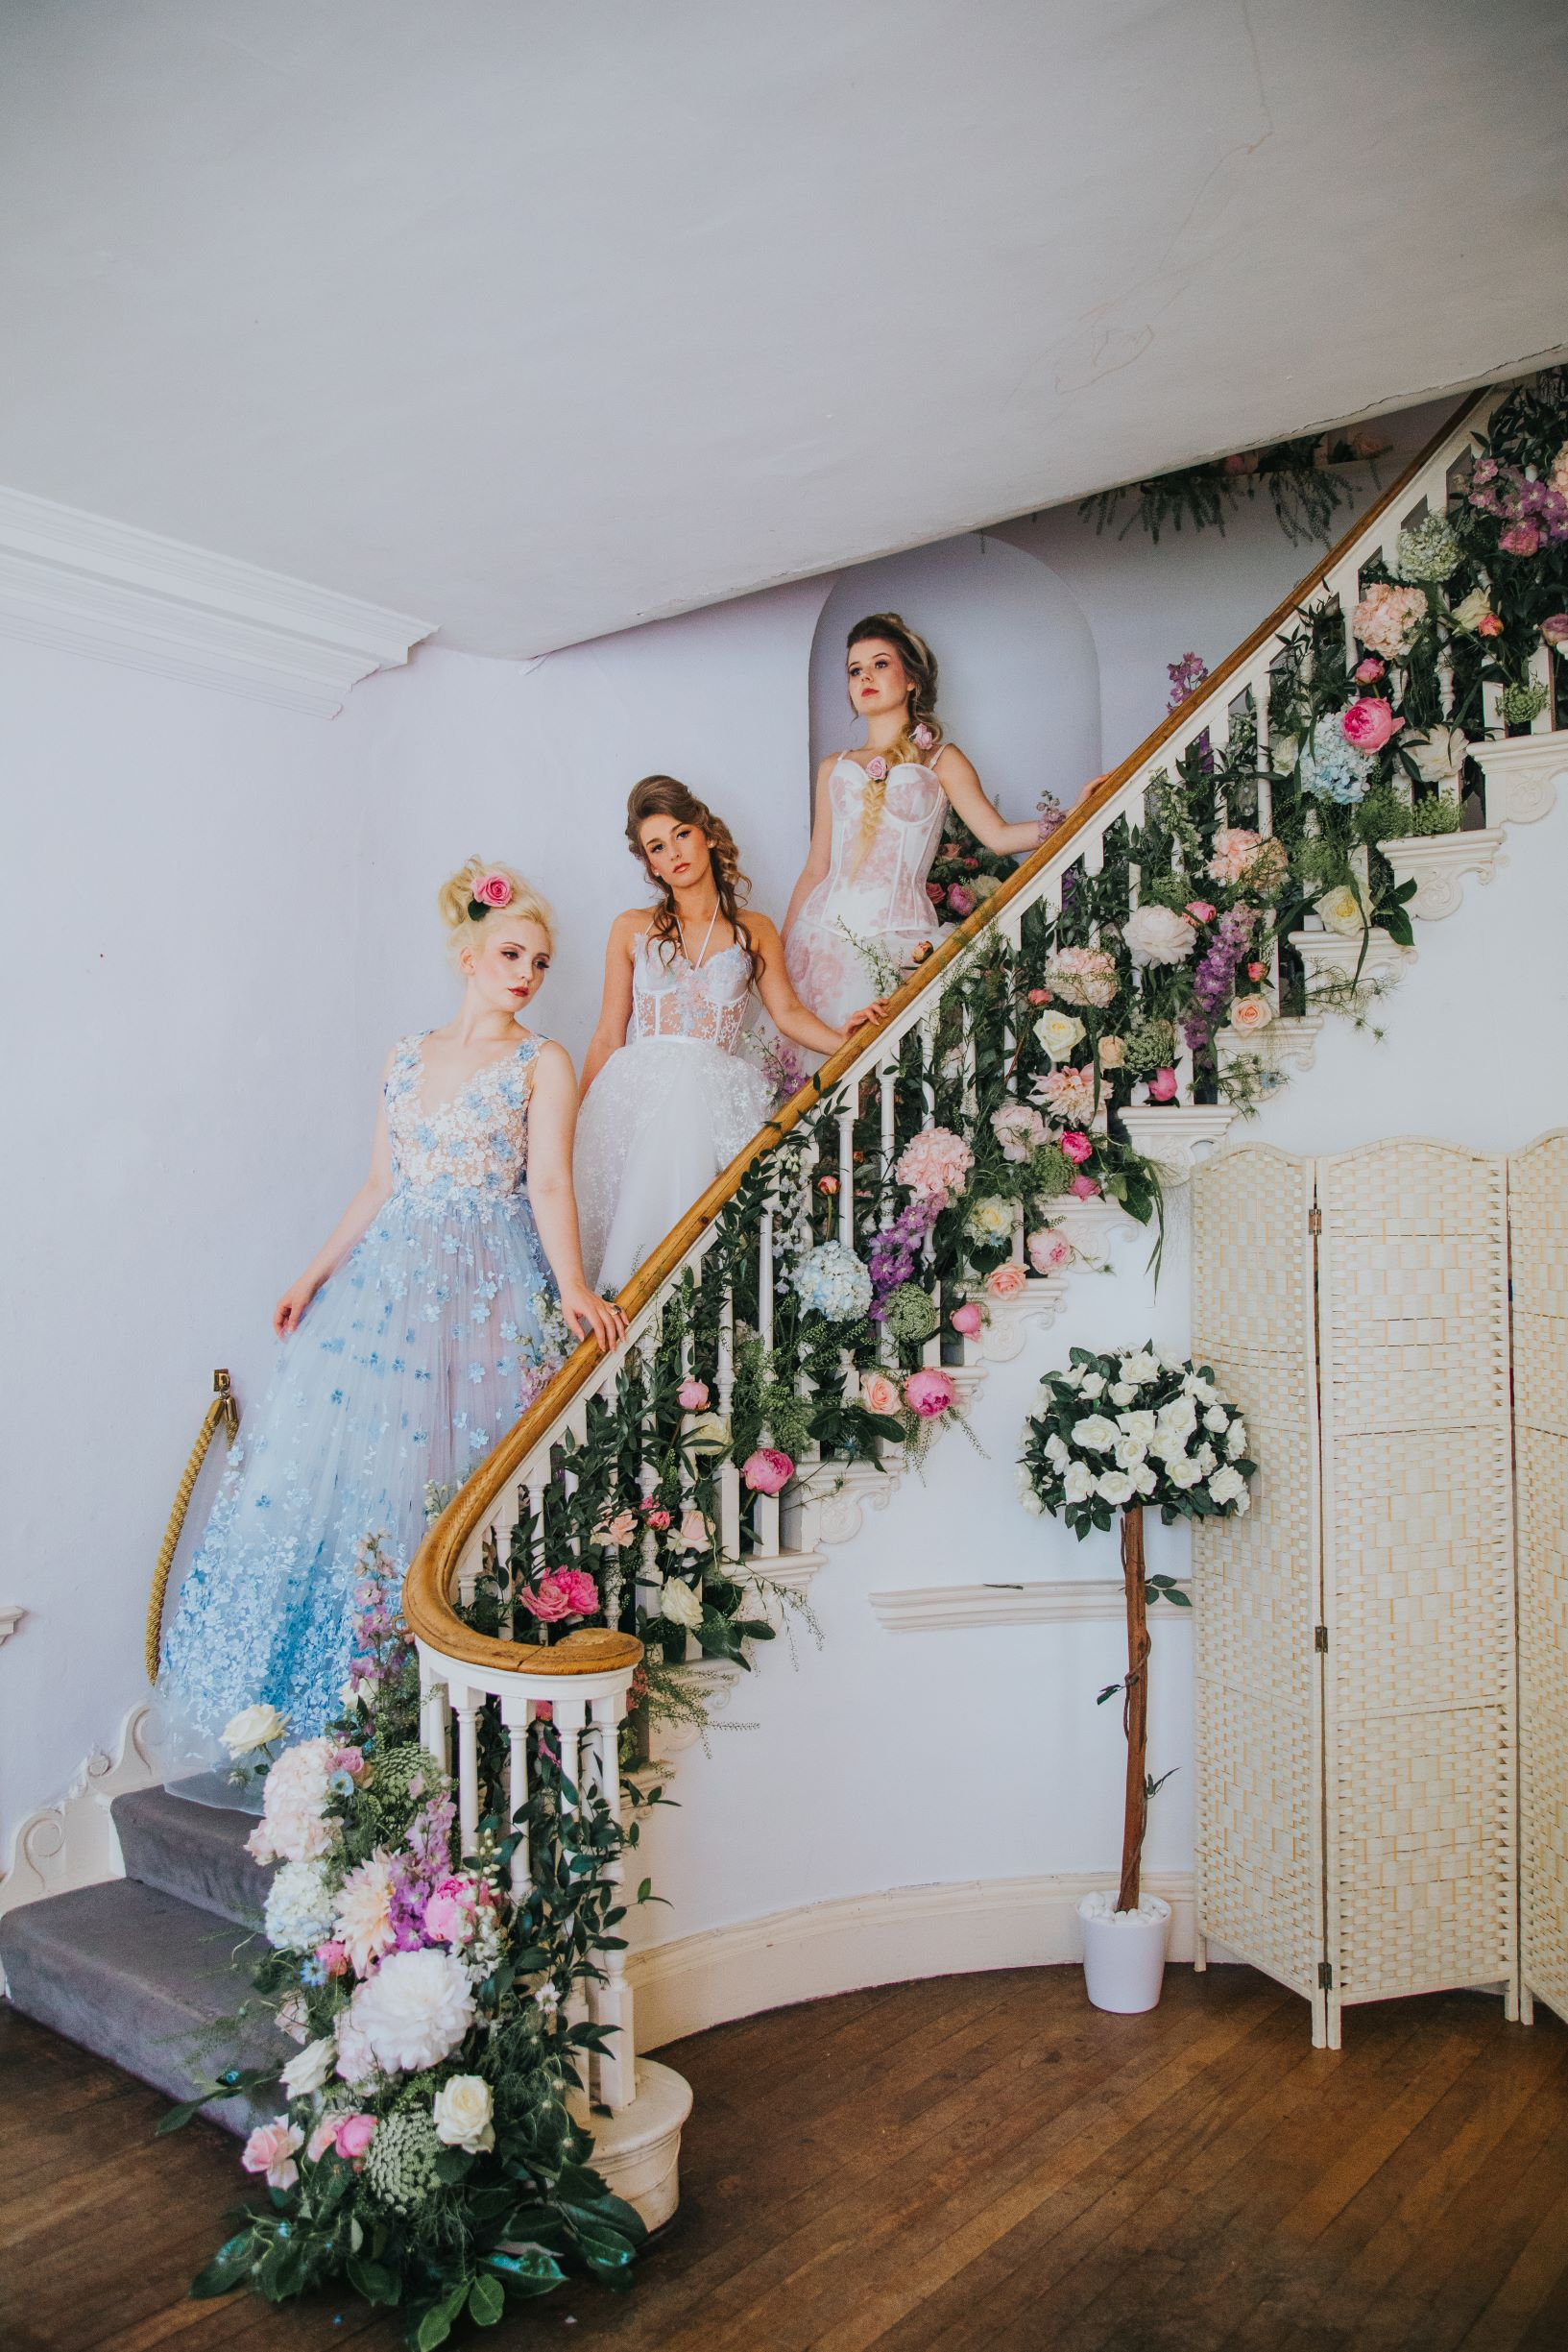 Whimsical wedding- Laura Beresford Photography- unconventional wedding- alternative wedding- brides on staircase- alternative wedding flowers- blue wedding dress